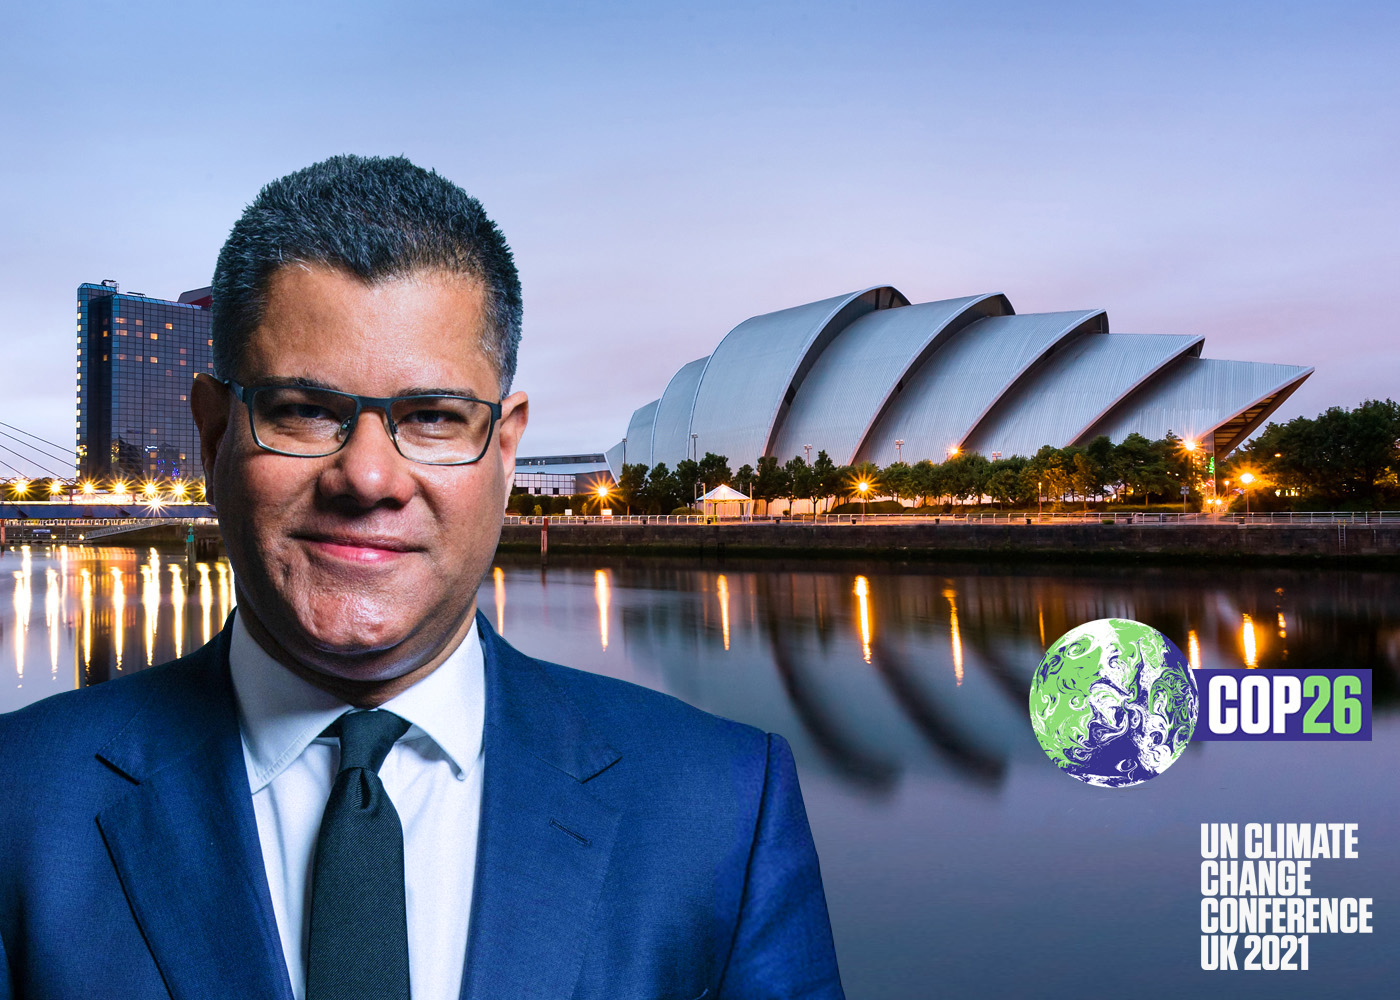 COP26 President-Designate Alok Sharma on why Glasgow must deliver